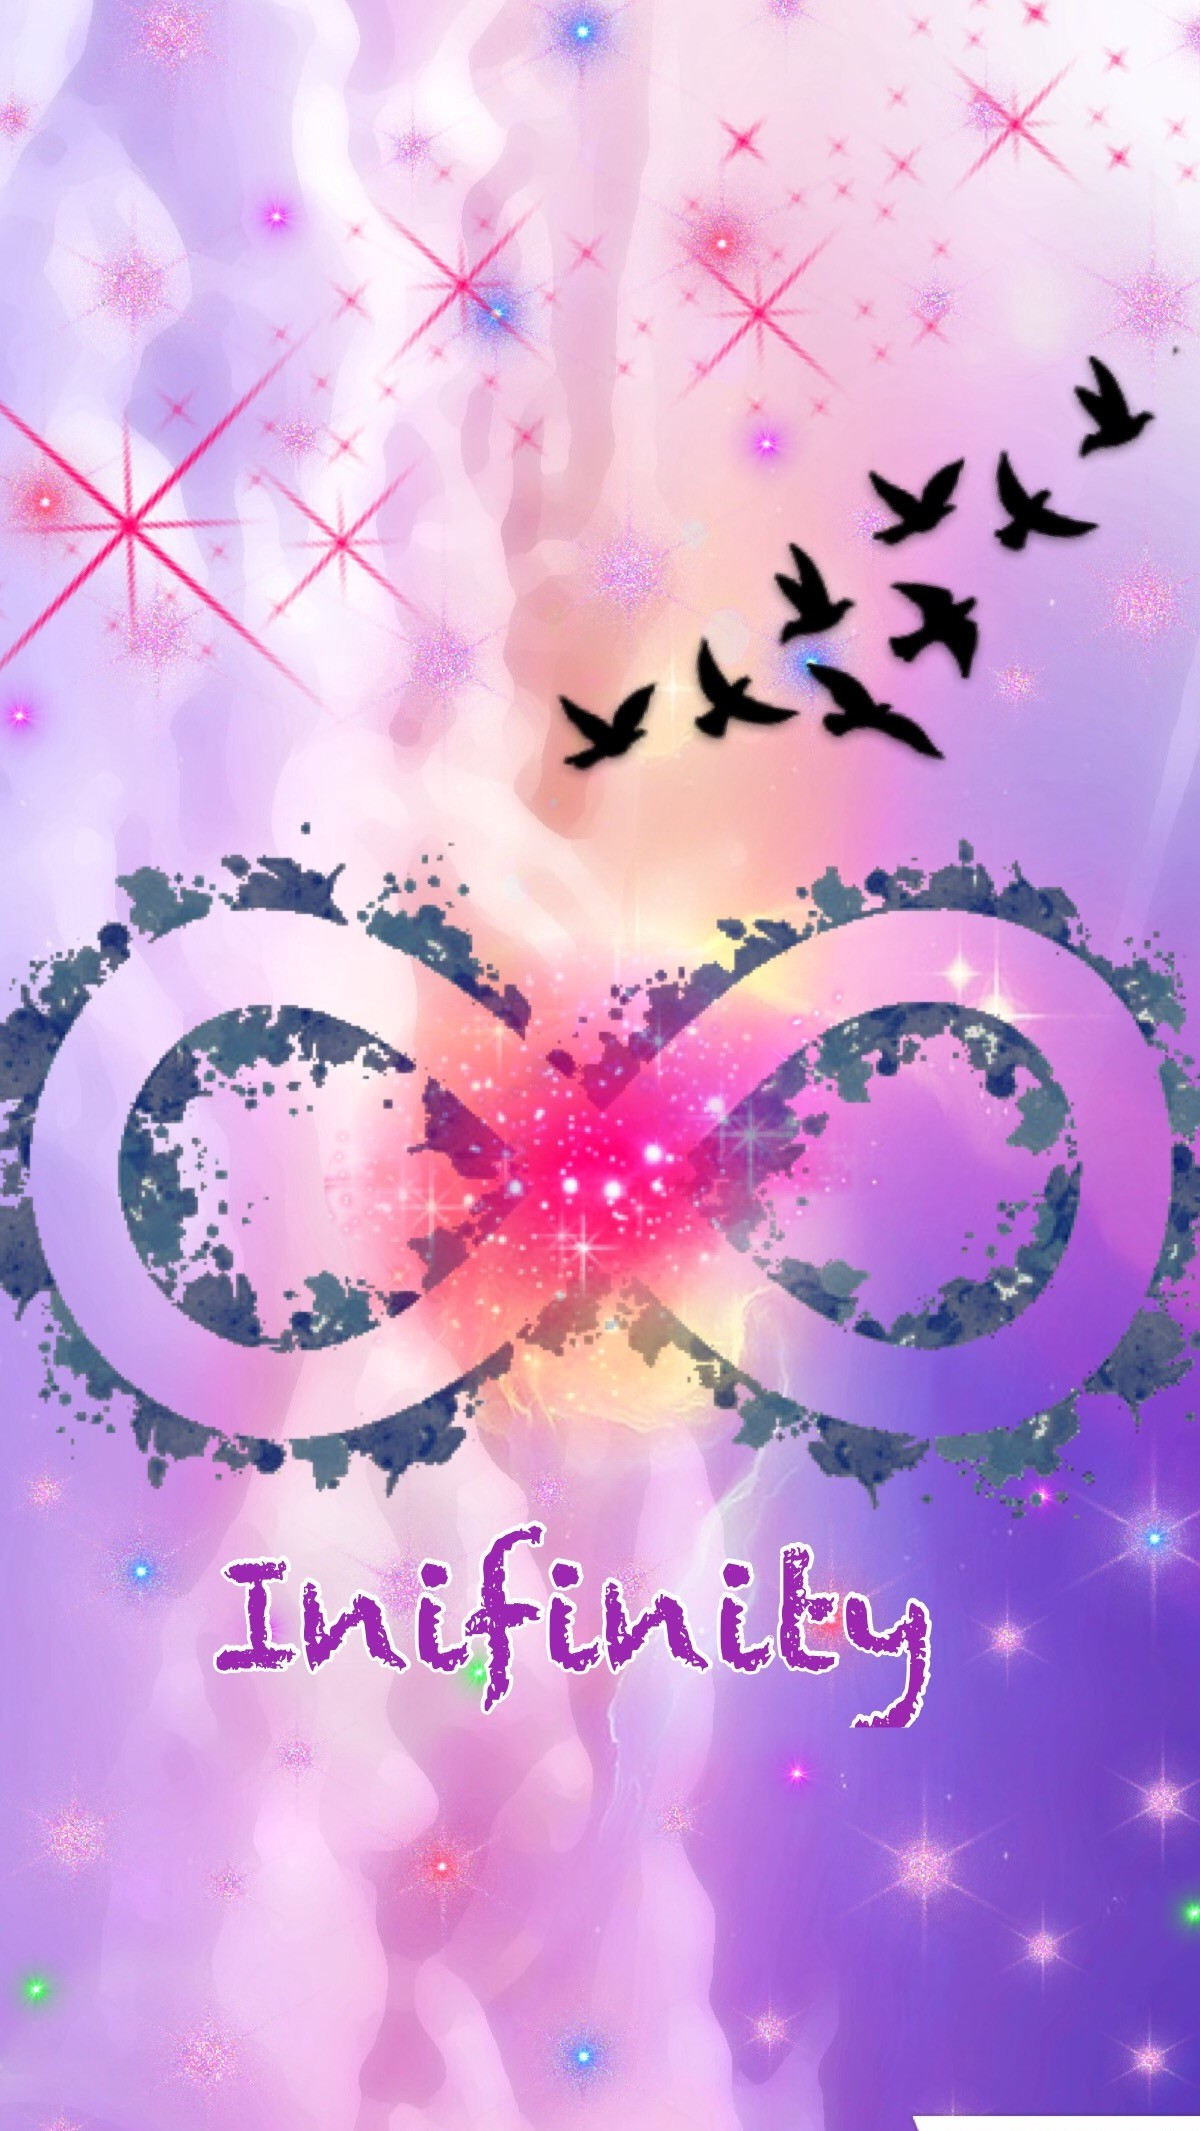 Infinity Symbol Wallpapers (73+ Images